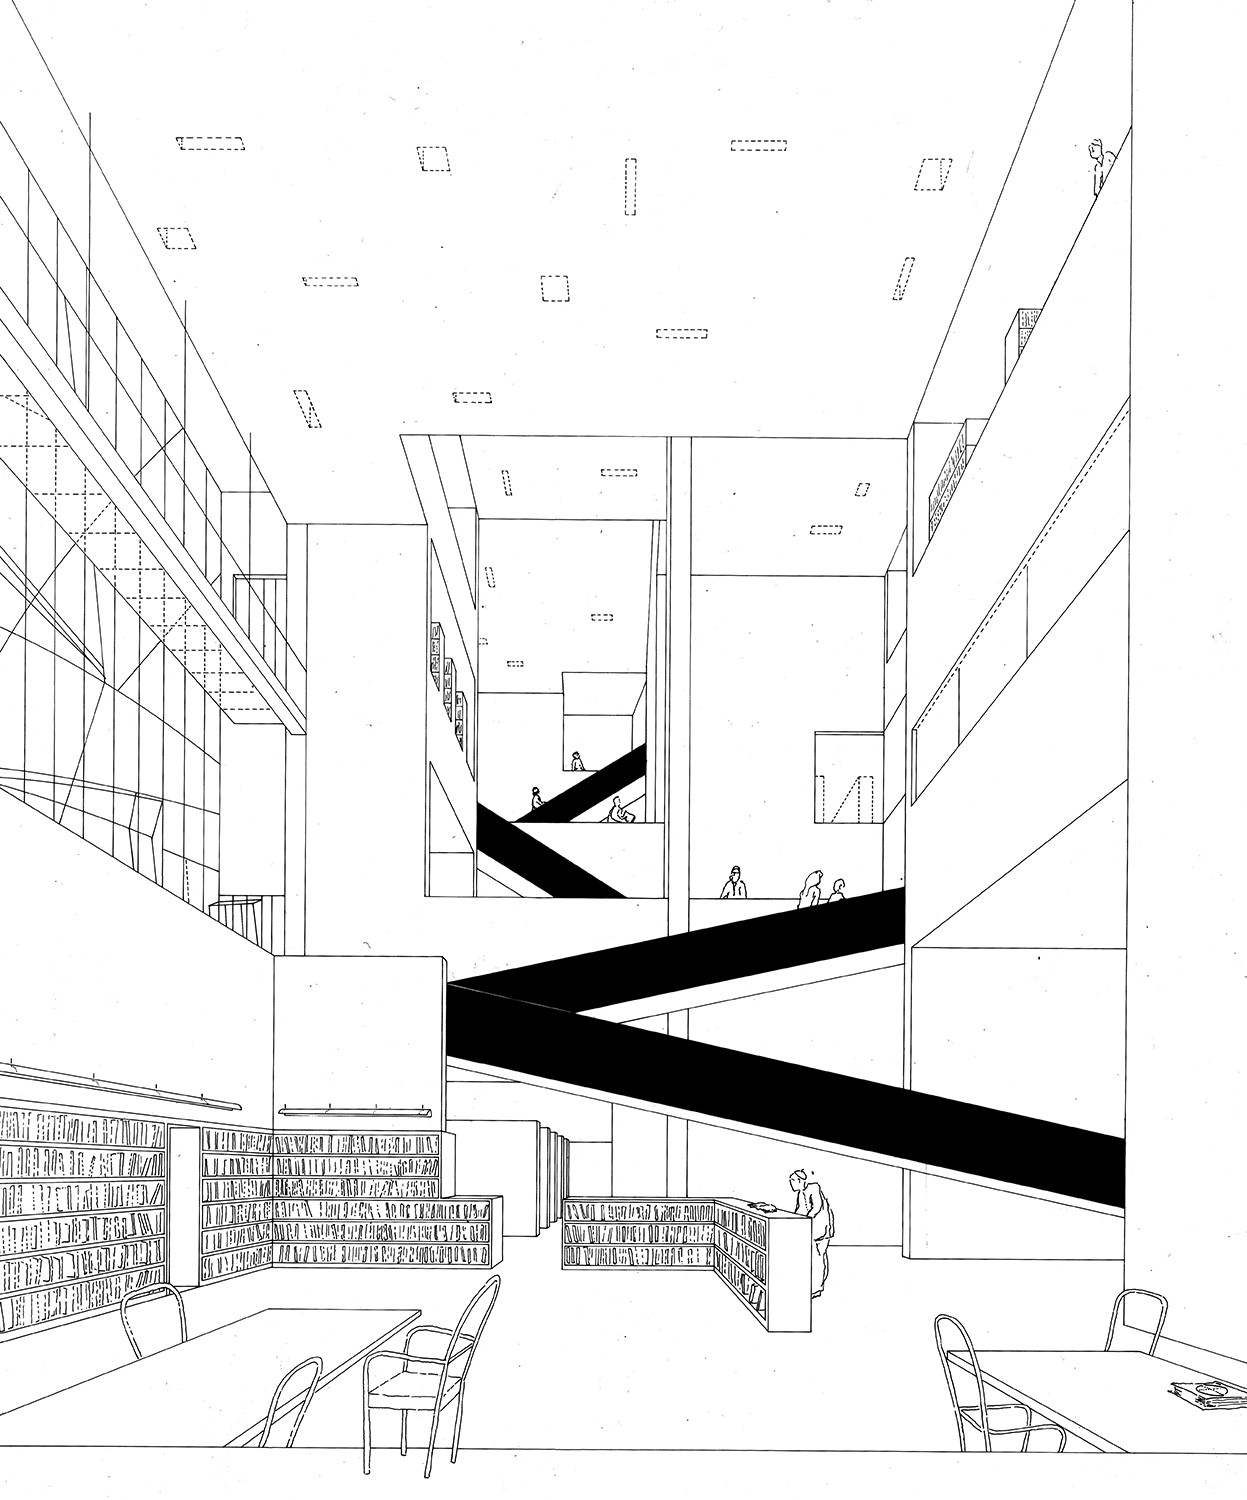 https://s3.us-east-2.amazonaws.com/steven-holl/uploads/projects/project-images/StevenHollArchitects_Berlindrawing_WV.jpg